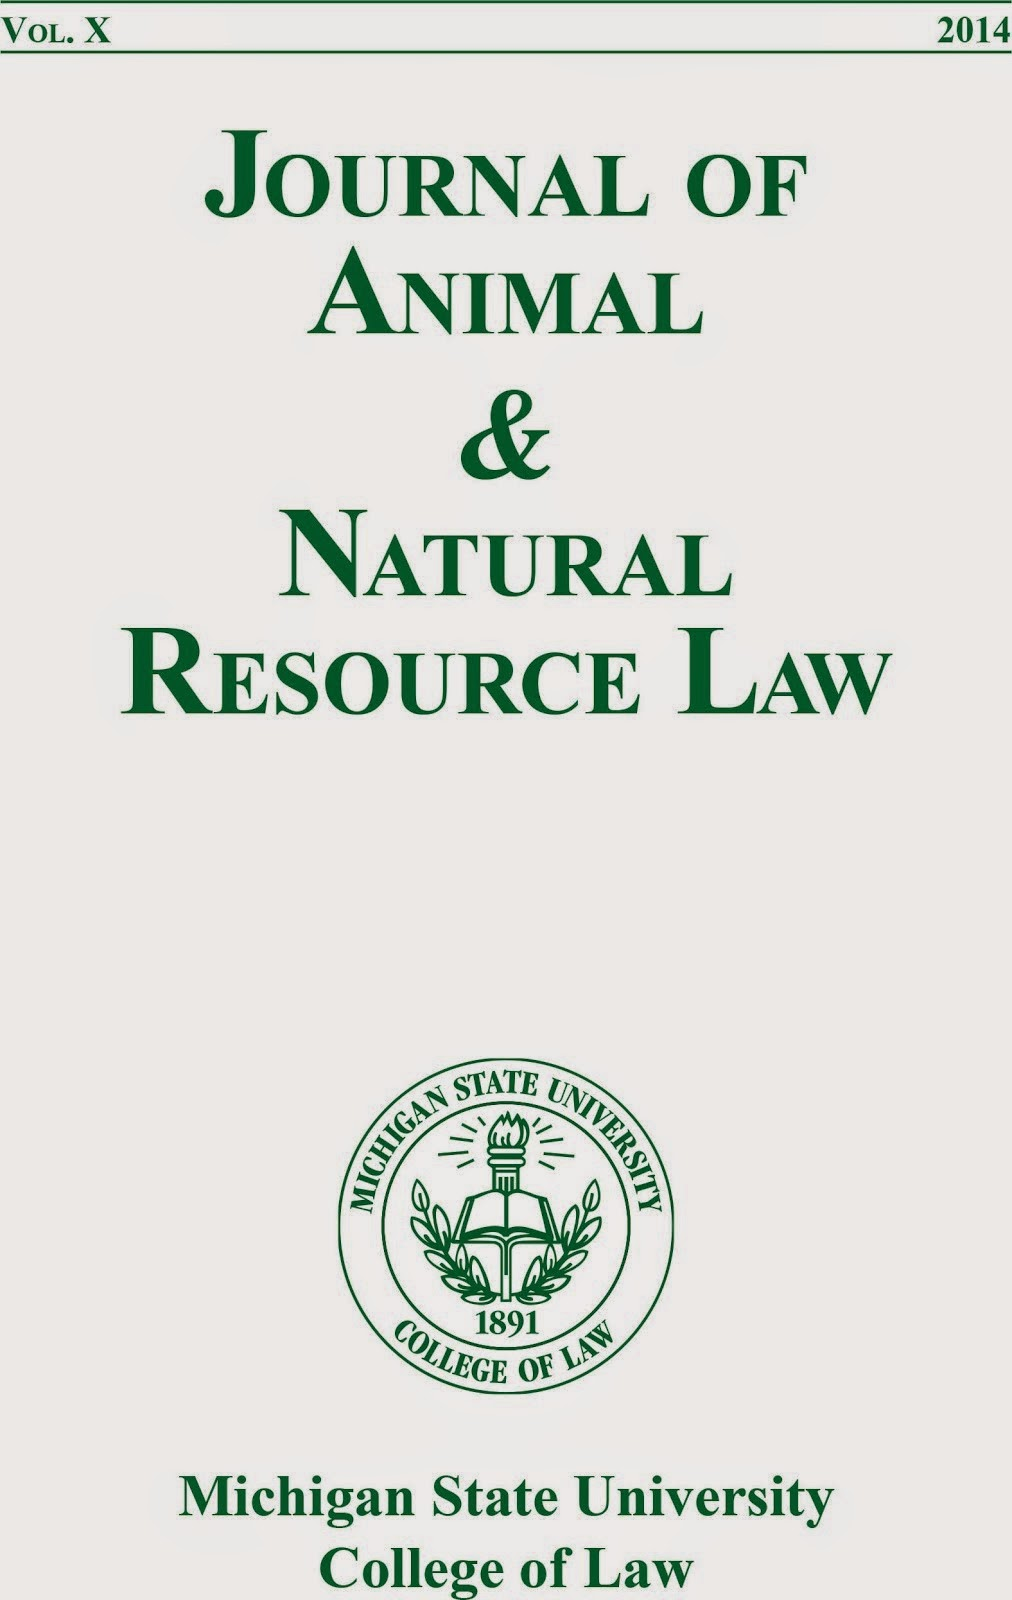 Journal of Animal and Natural Resource Law, vol. 10 (2014)